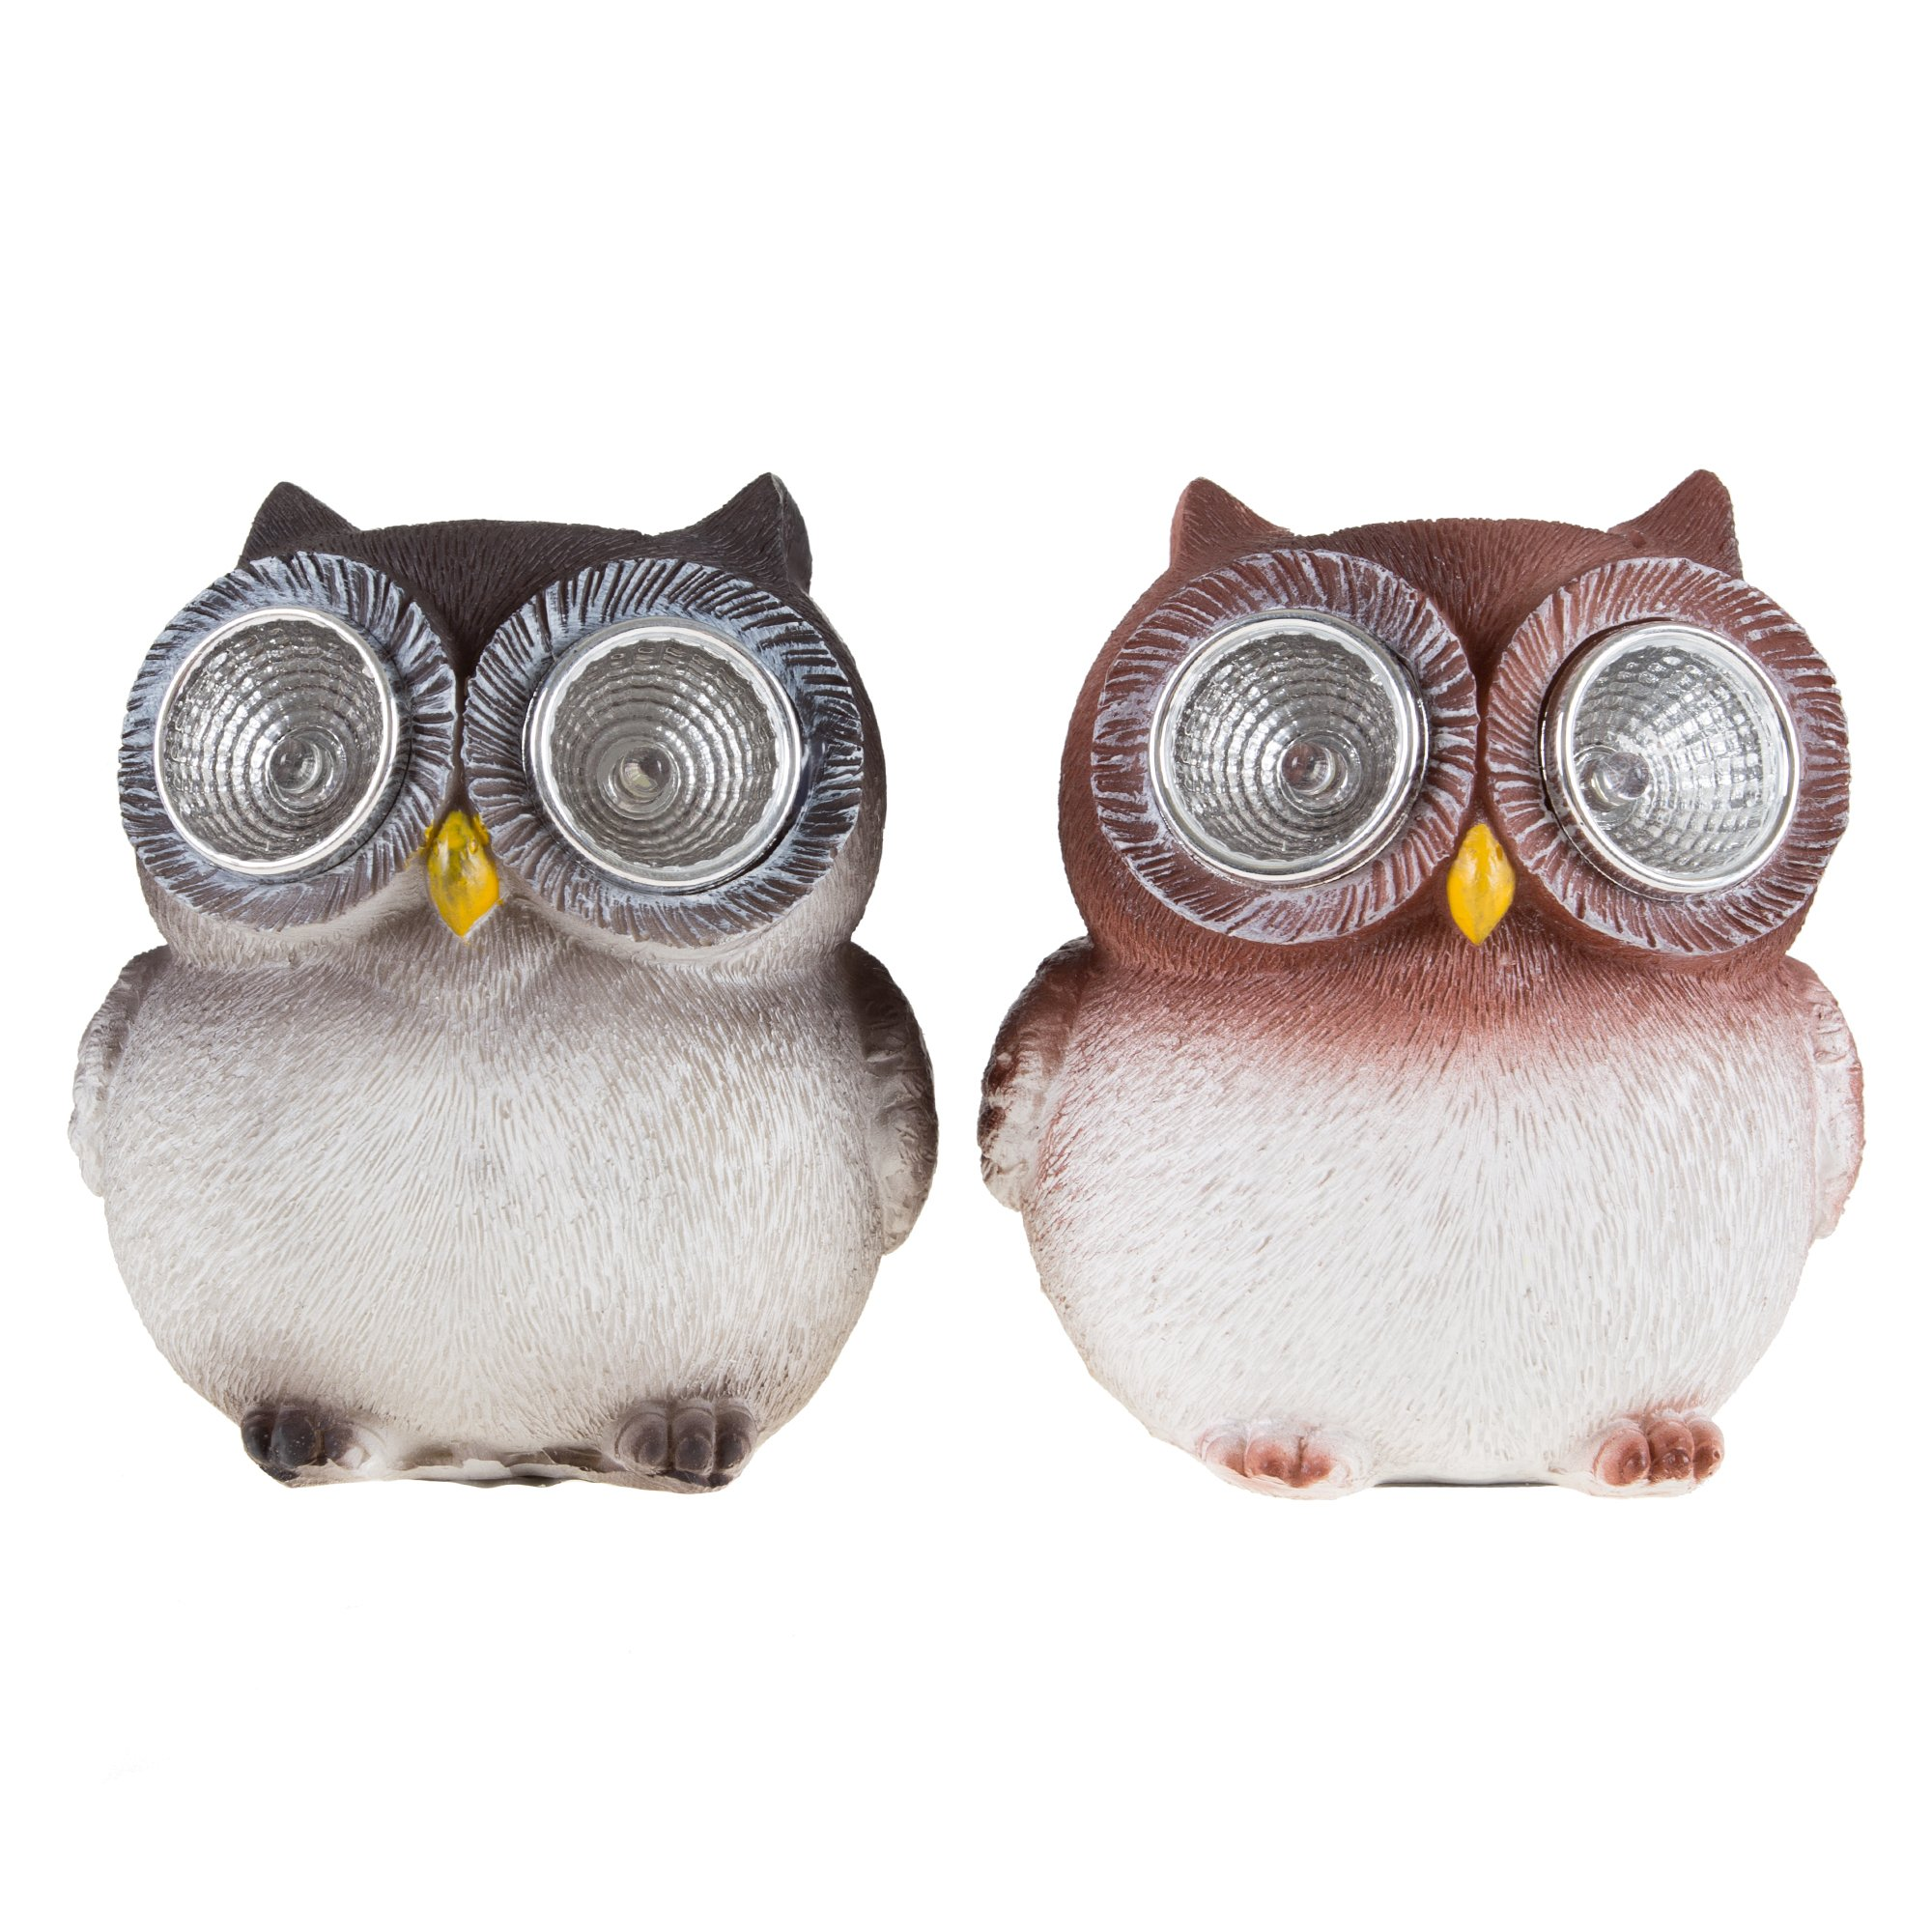 Pure Garden Yard Décor, Solar Outdoor LED Light and Battery Operated Statue for Garden, Patio, Lawn, and Yard by Owl set of 2 Statue